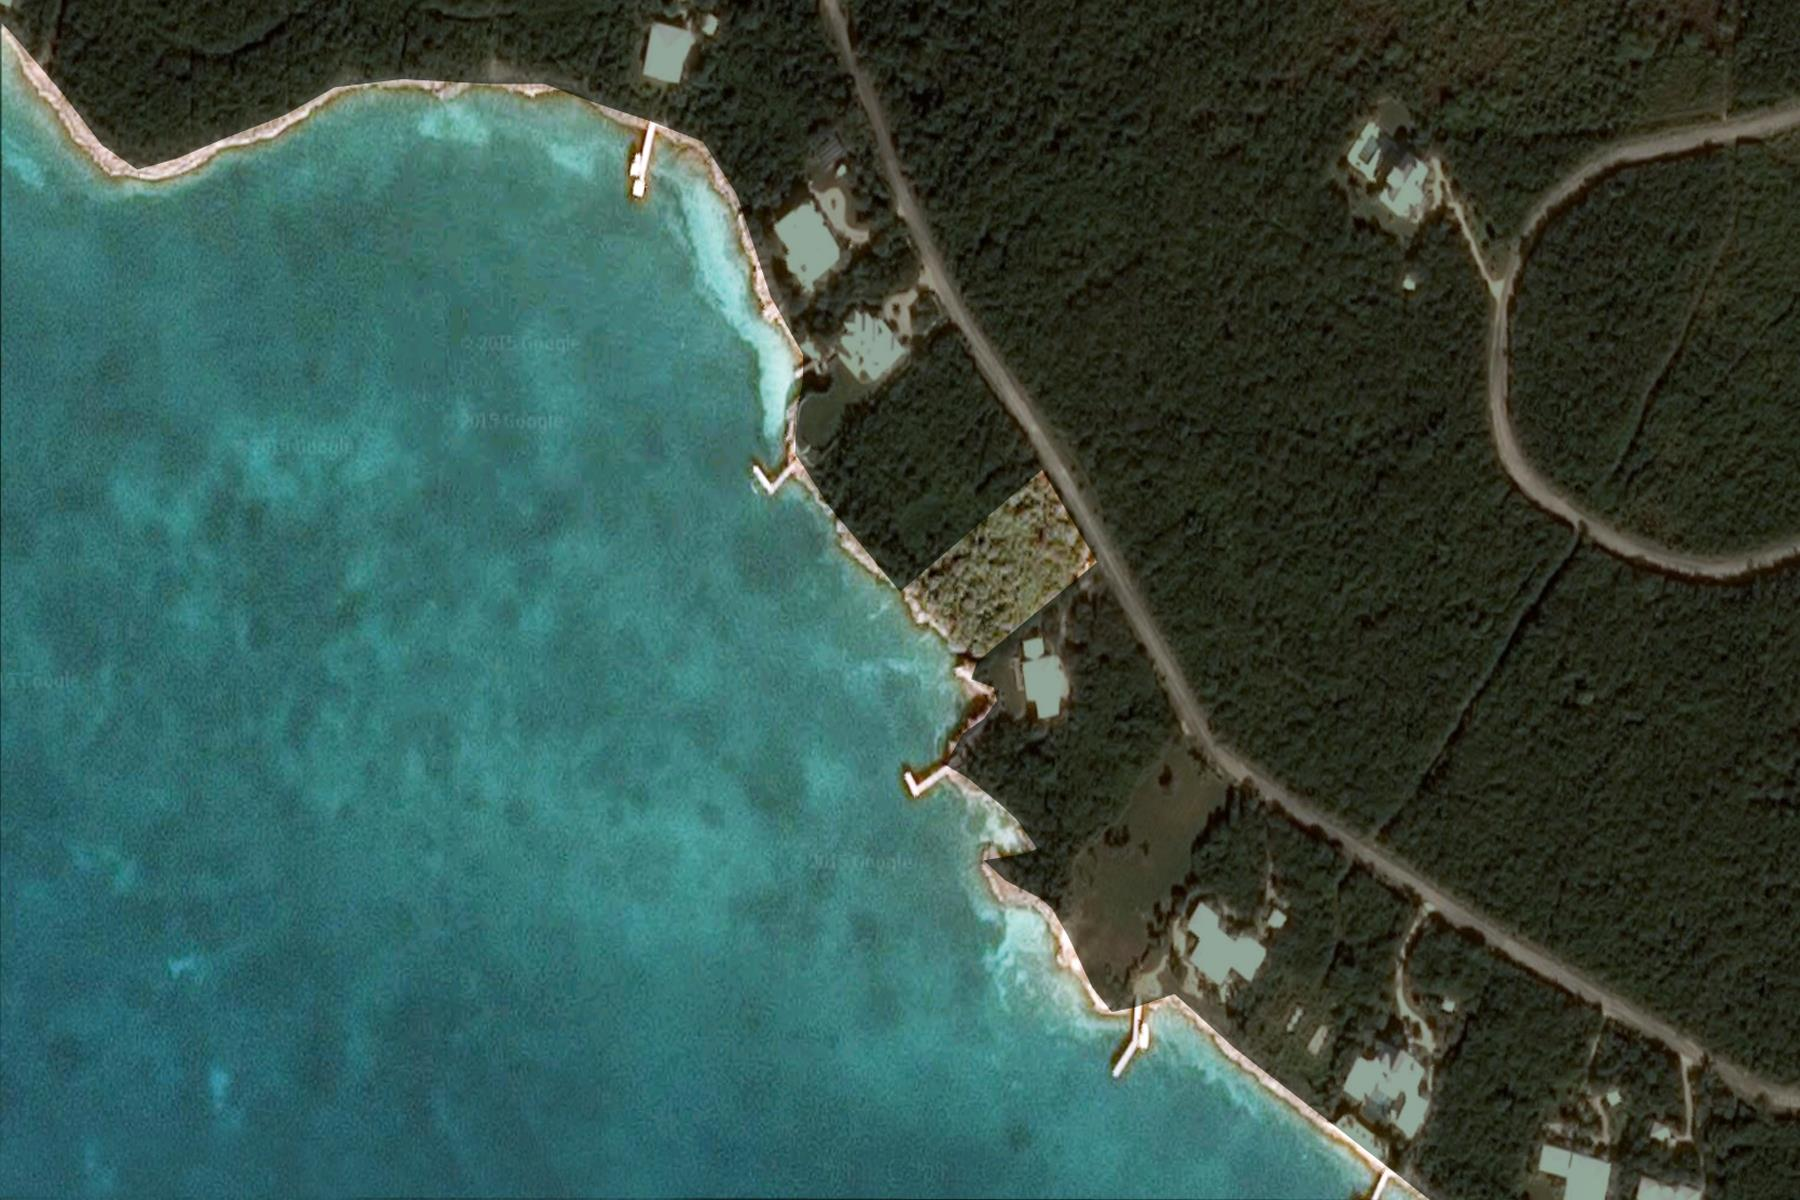 Acreage / Land / Lots for Sale at Lot 34, Orchid Bay, Guana Cay Guana Cay, Abaco Bahamas